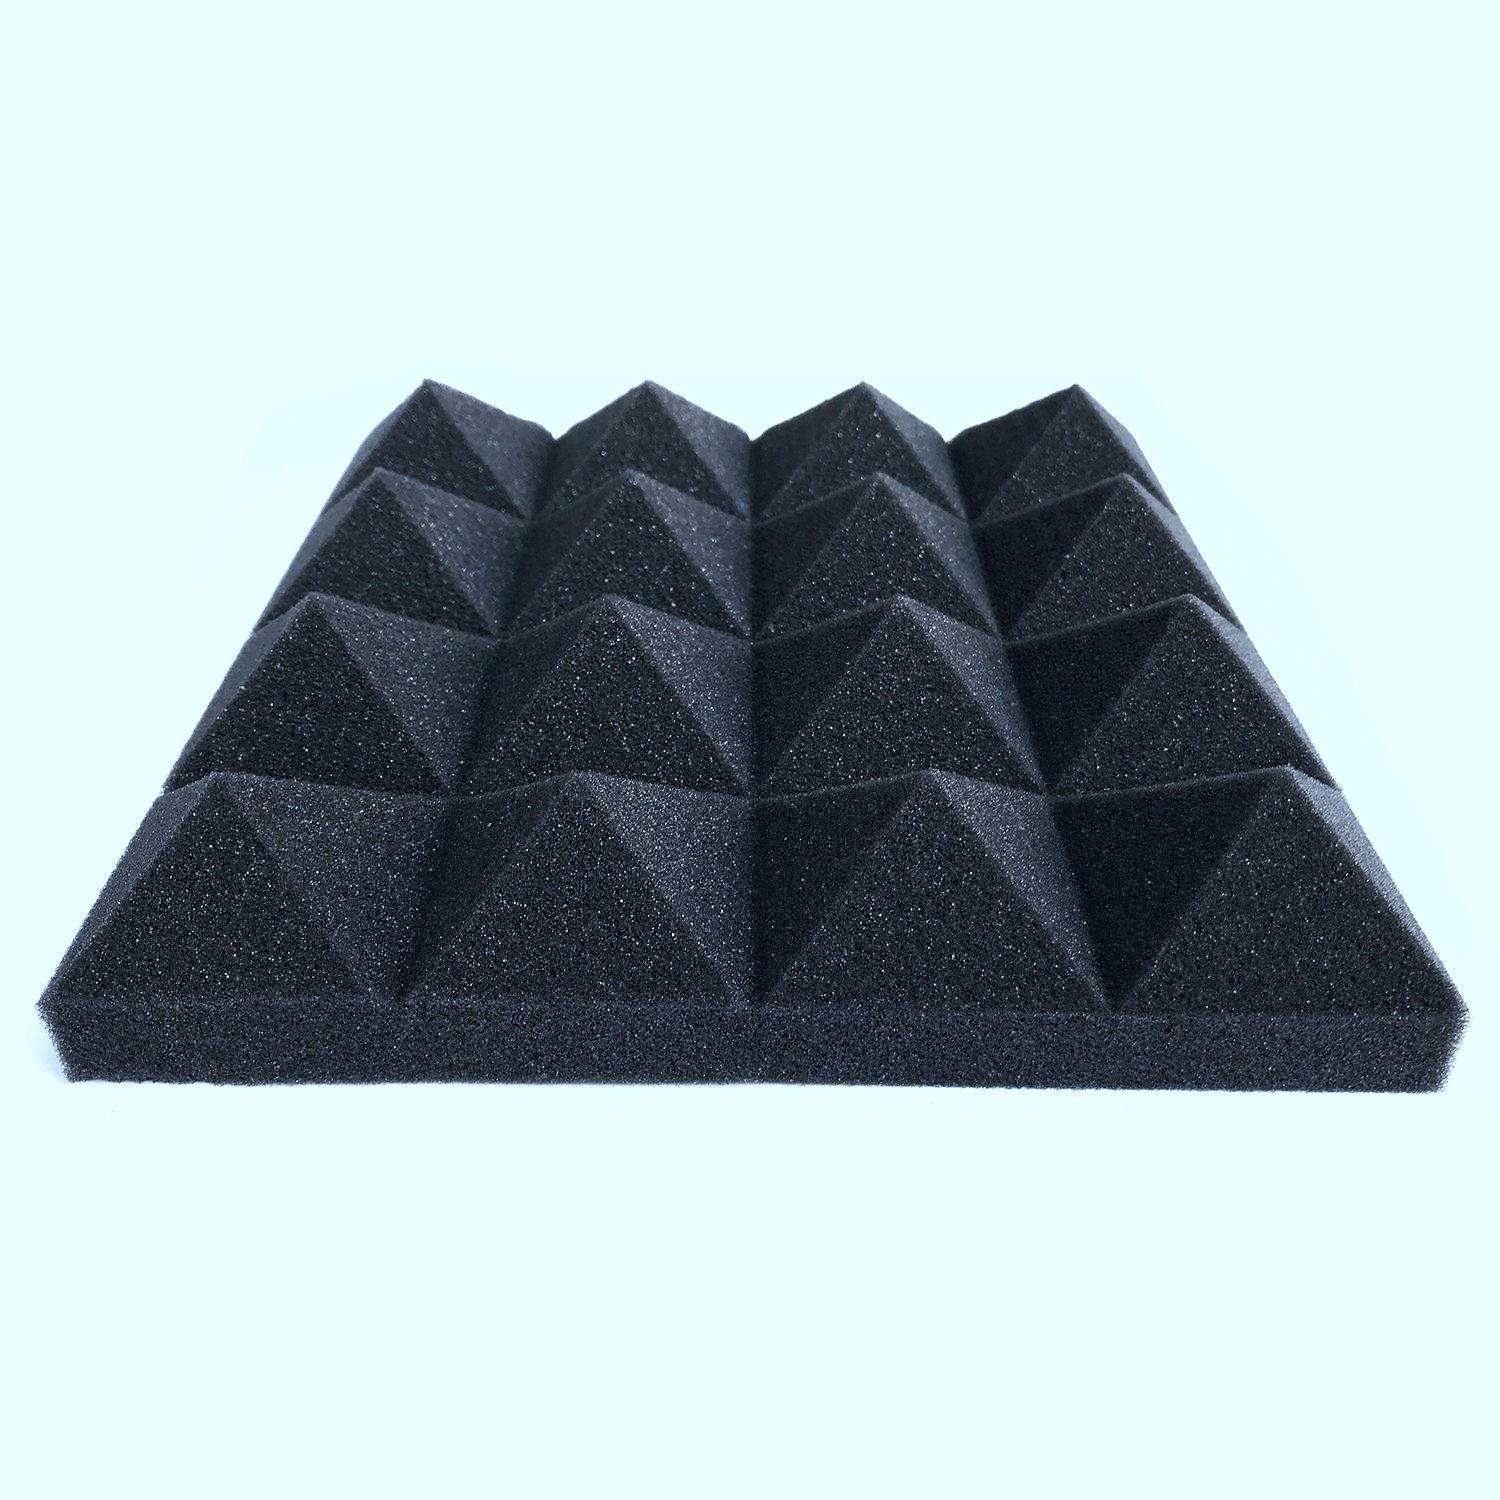 12 Pcs -Soundproofing Foam Sound Absorption Pyramid Studio Treatment Wall Panels